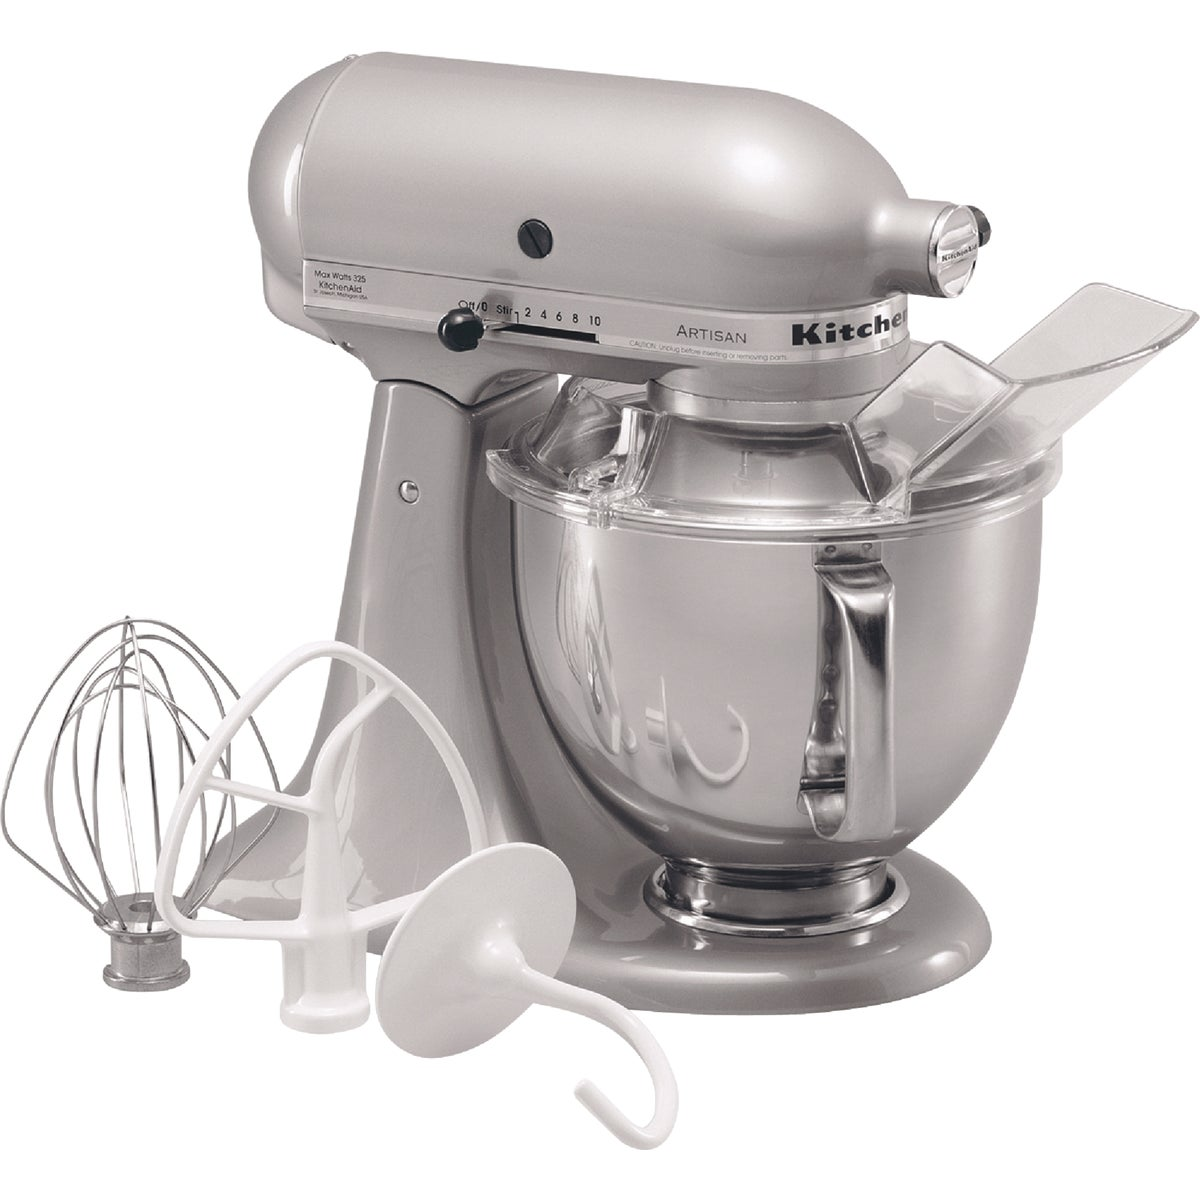 CHR ARTISAN STAND MIXER - KSM150PSMC by Kitchenaid Inc